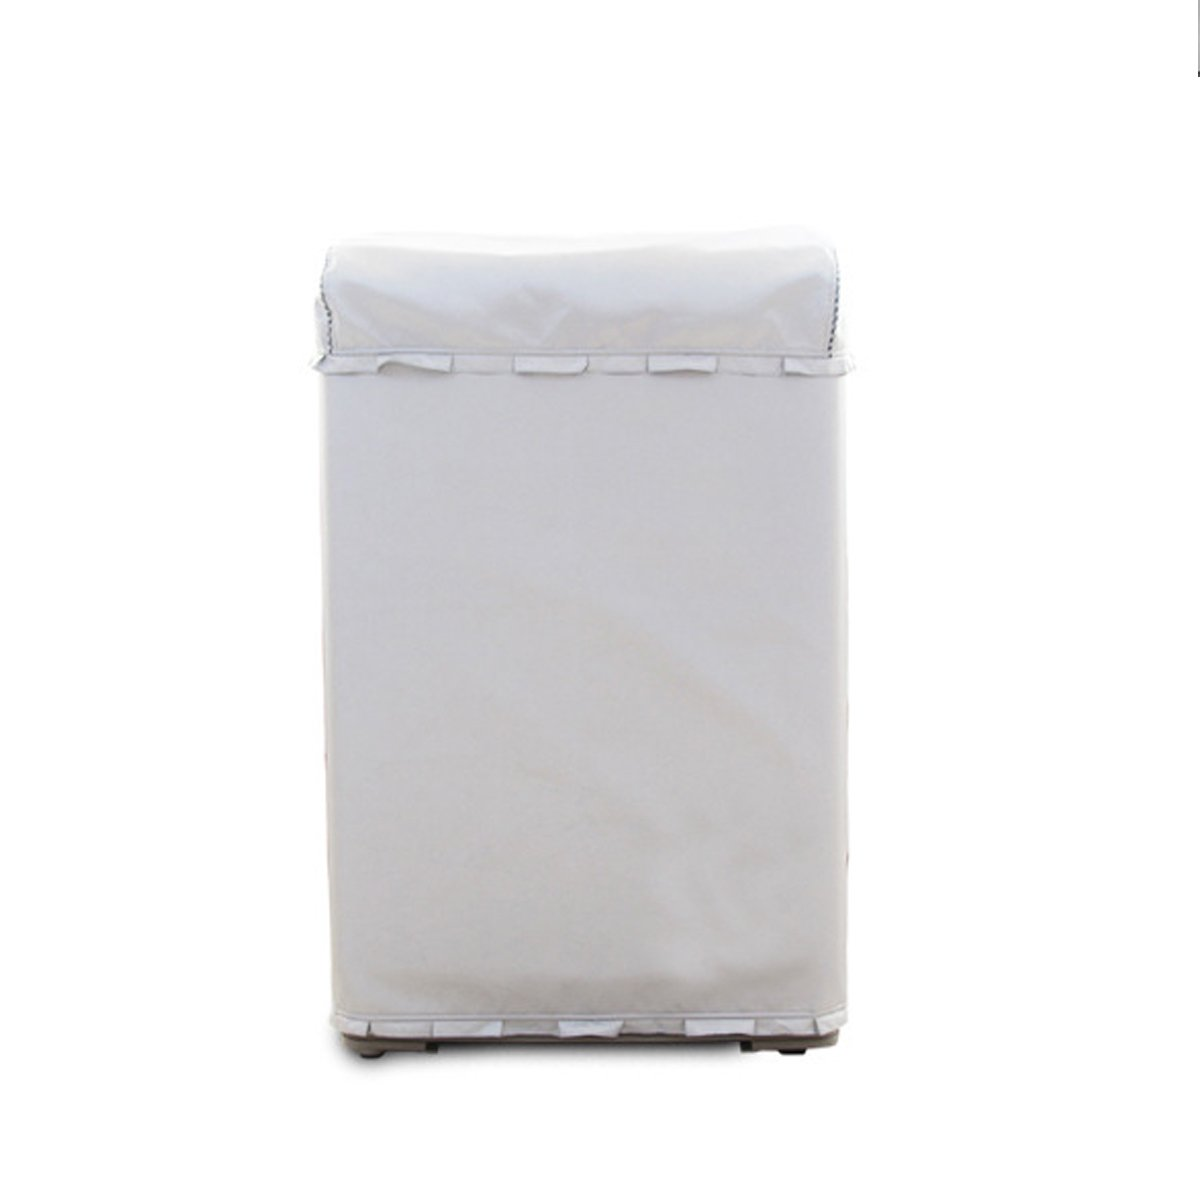 Vosarea Washing Machine Cover for Top-Load Washer/Dryer Waterproof Sunscreen Dustproof Cover